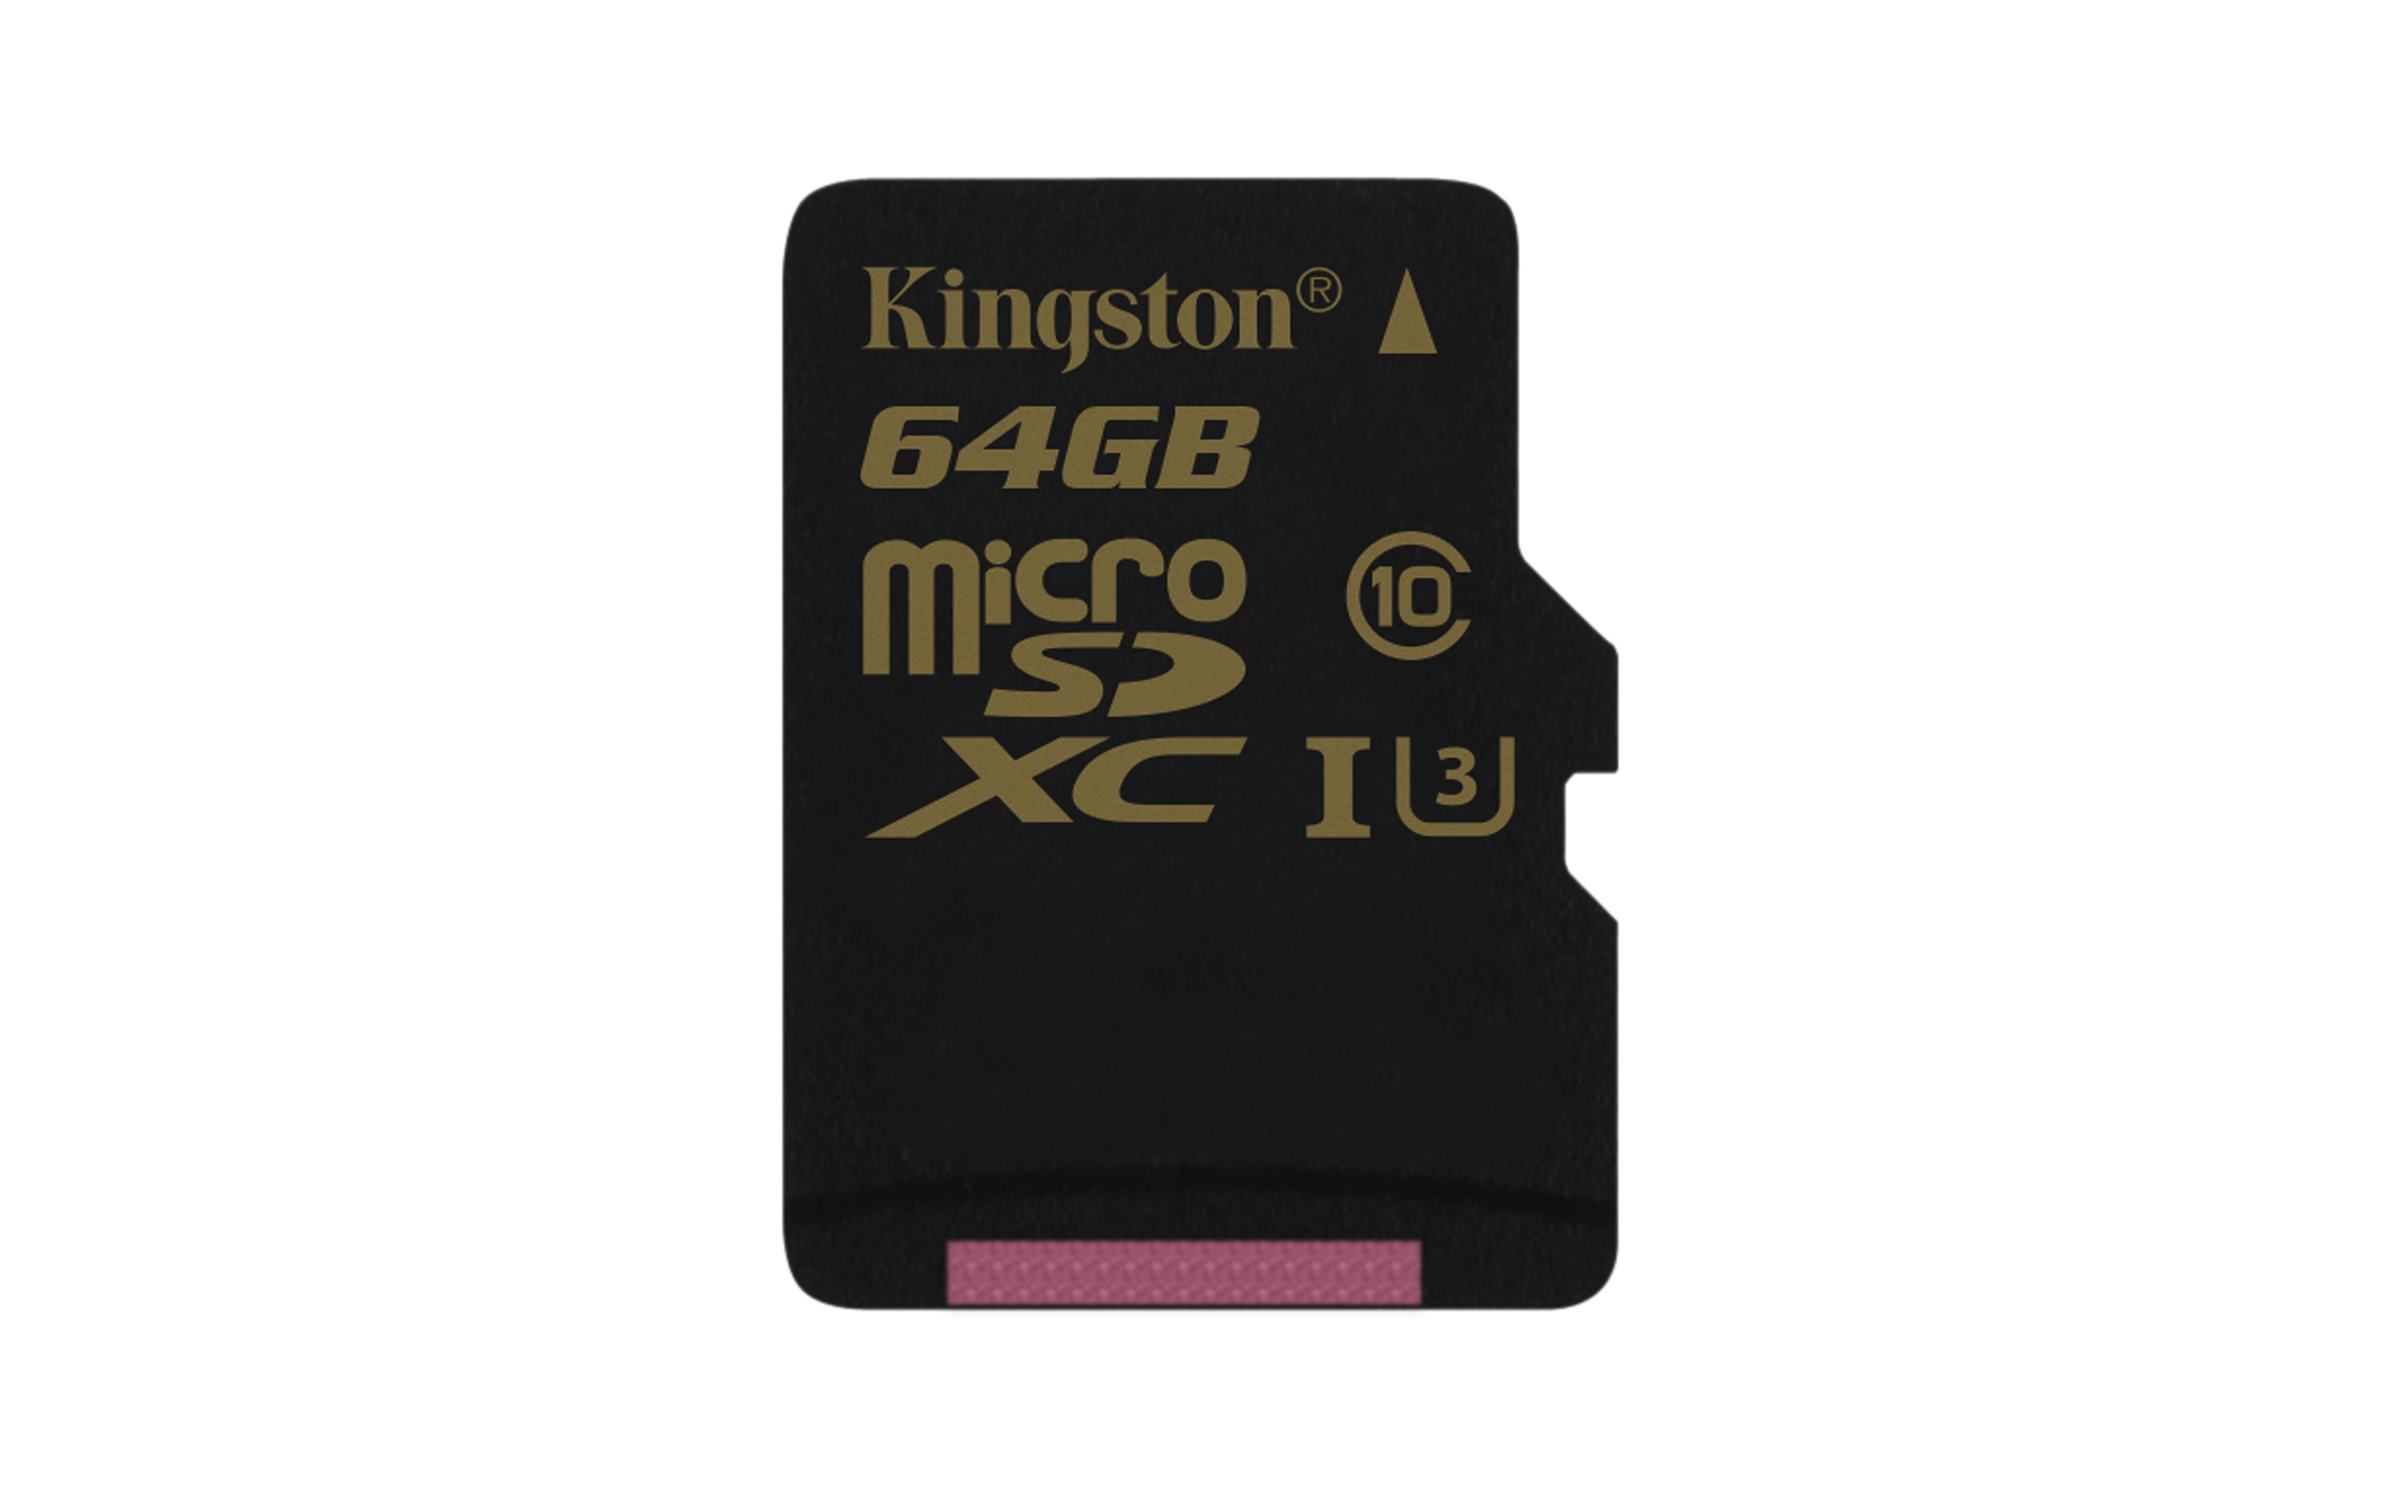 microSD Kingston Gold UHS-I Speed Class 3 (U3) - click for larger image